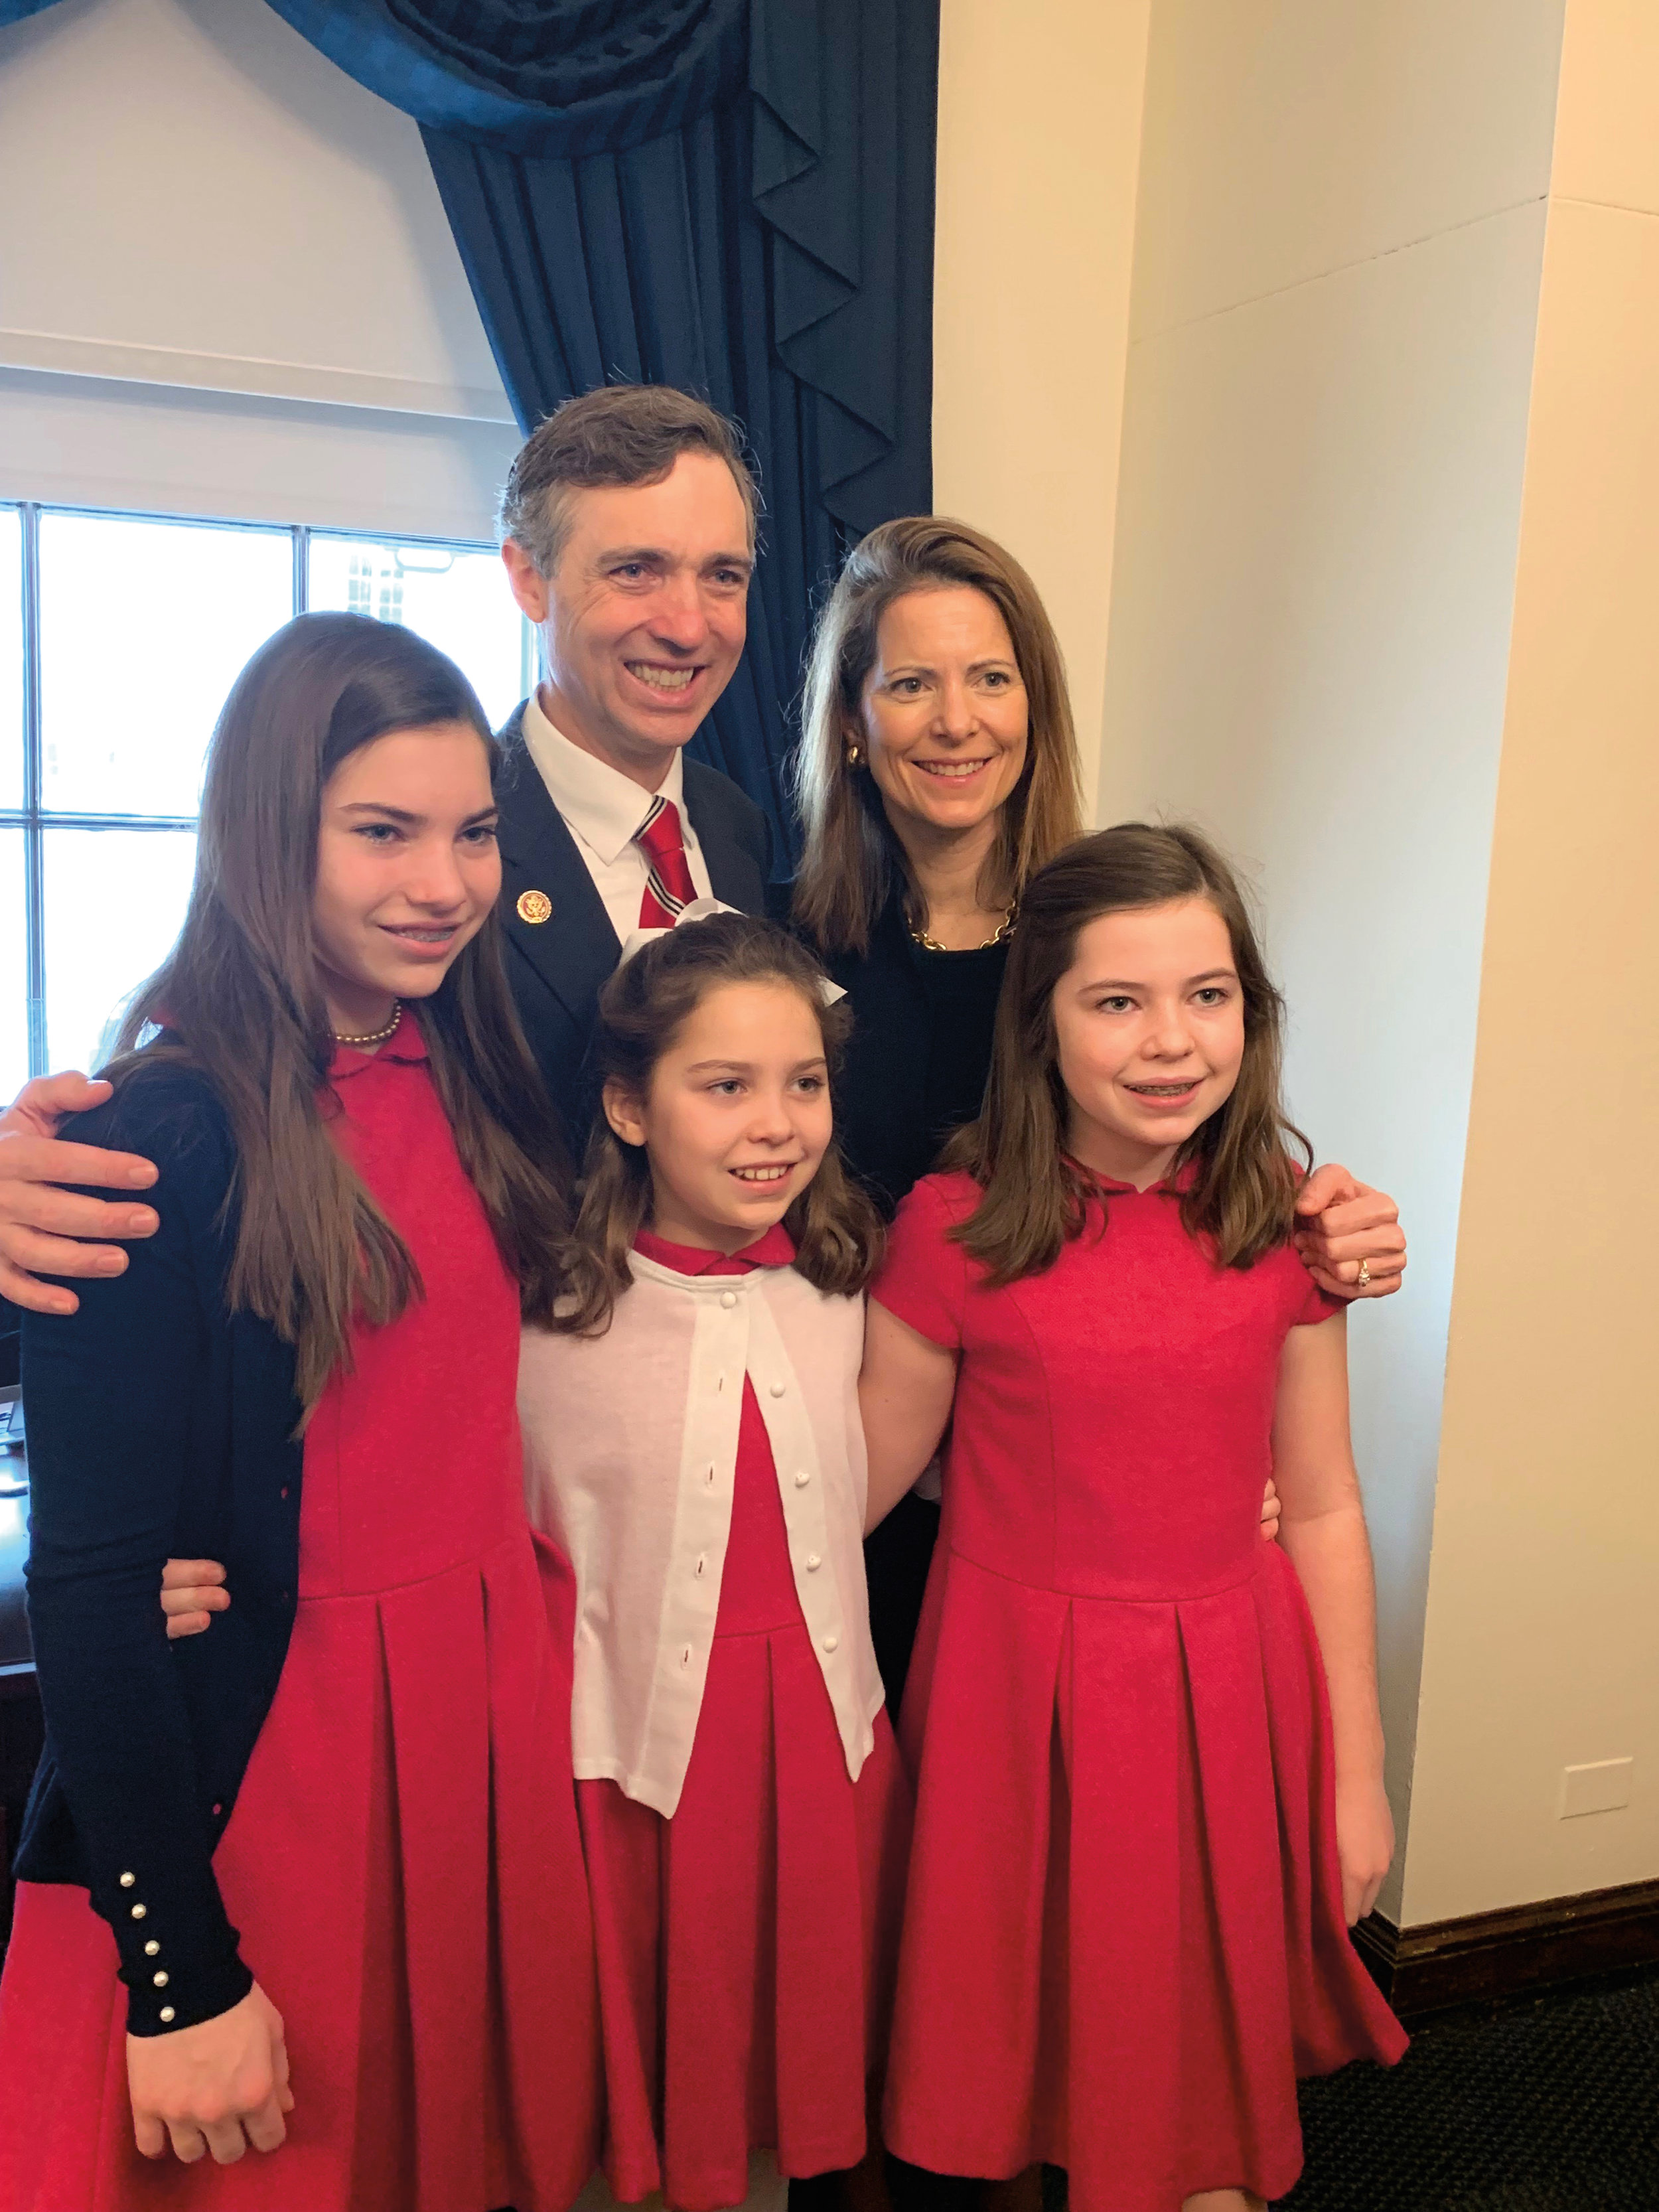 Van Taylor '91 with his wife, Anne, and daughters (l. to r.) Laura, Susie, and Helen prior to his swearing in as a Texas congressional representative.